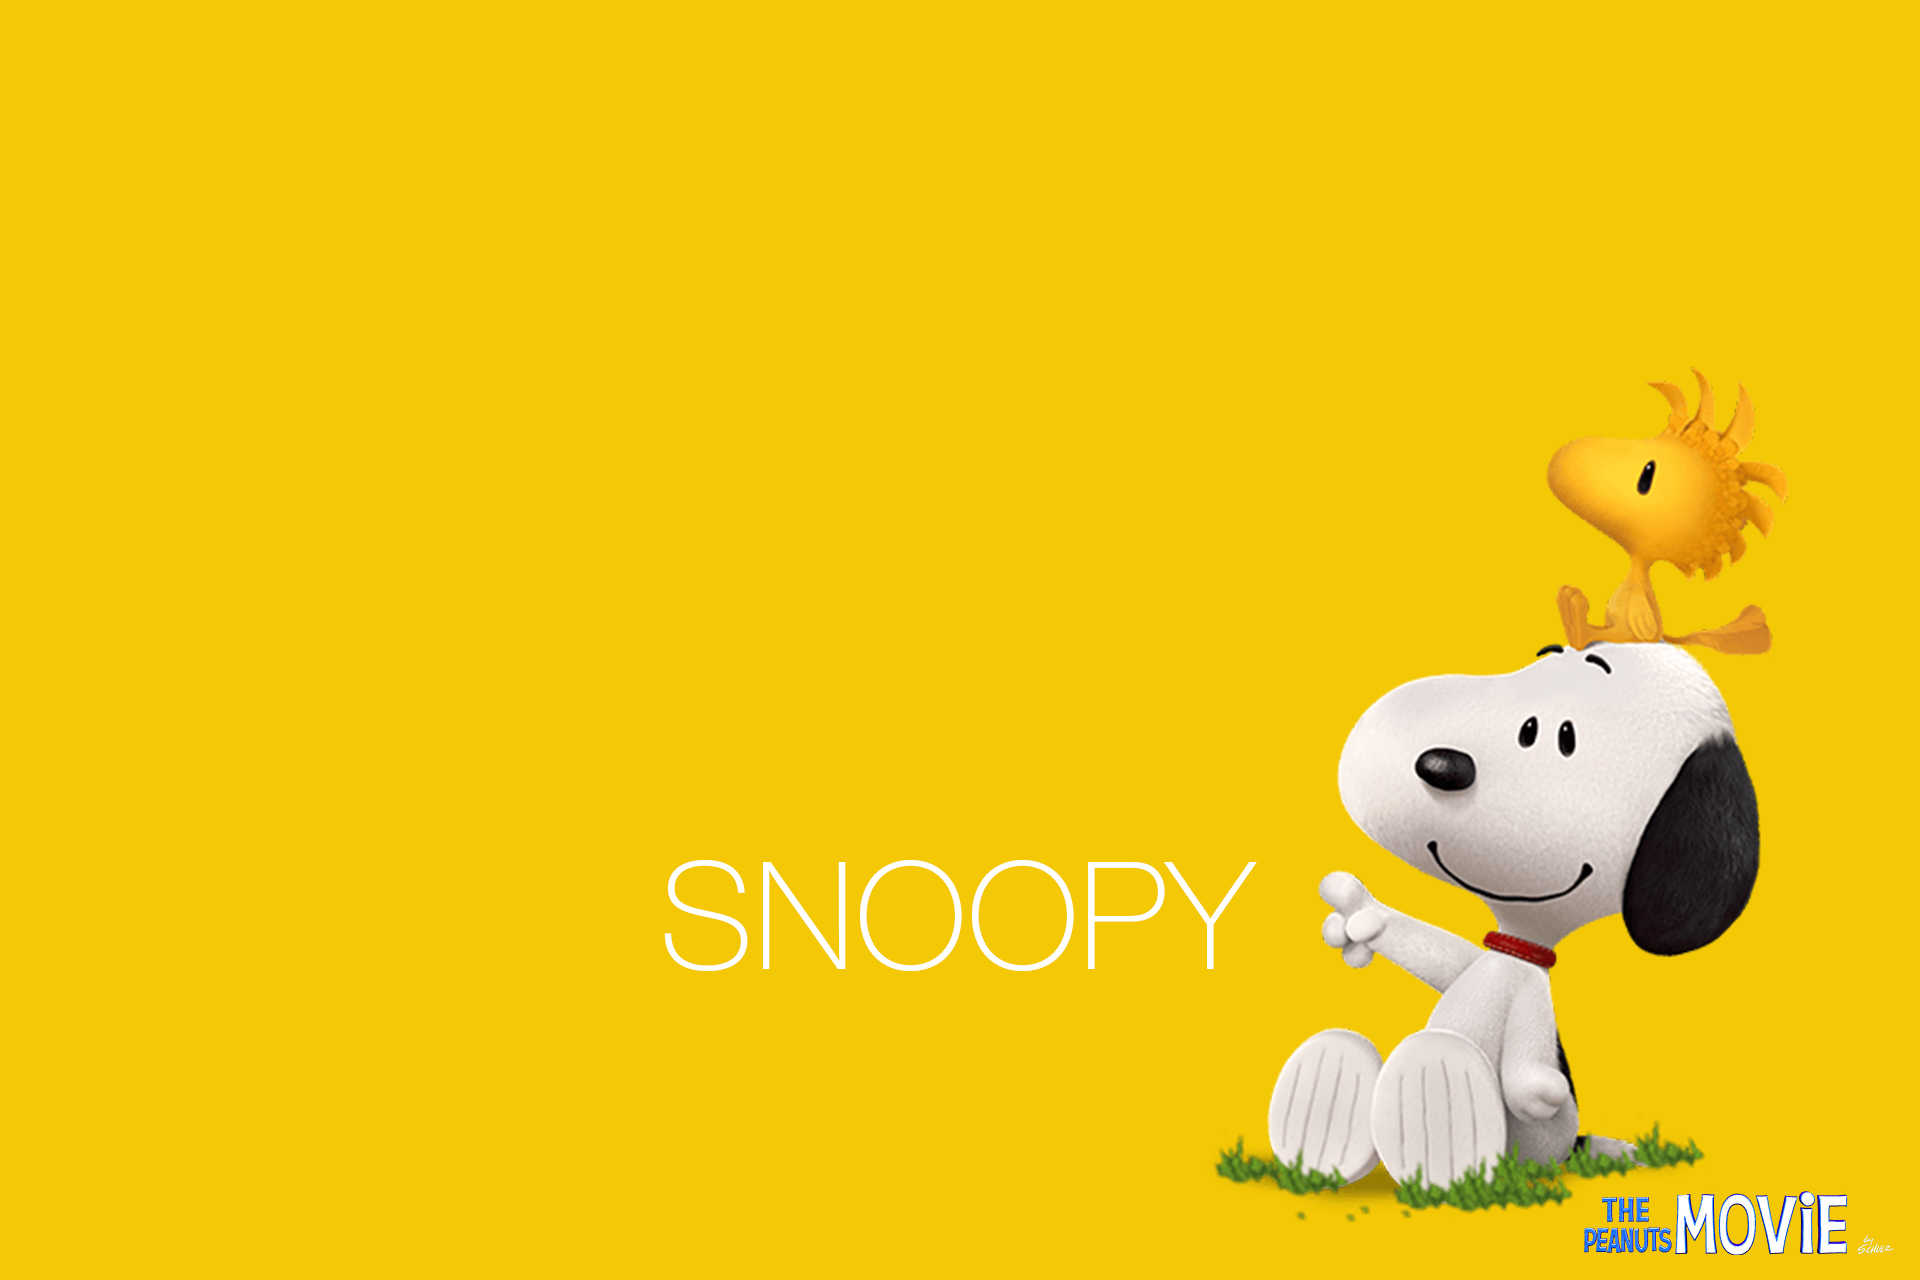 snoopy images snoopy hd wallpaper and background photos (40613465)